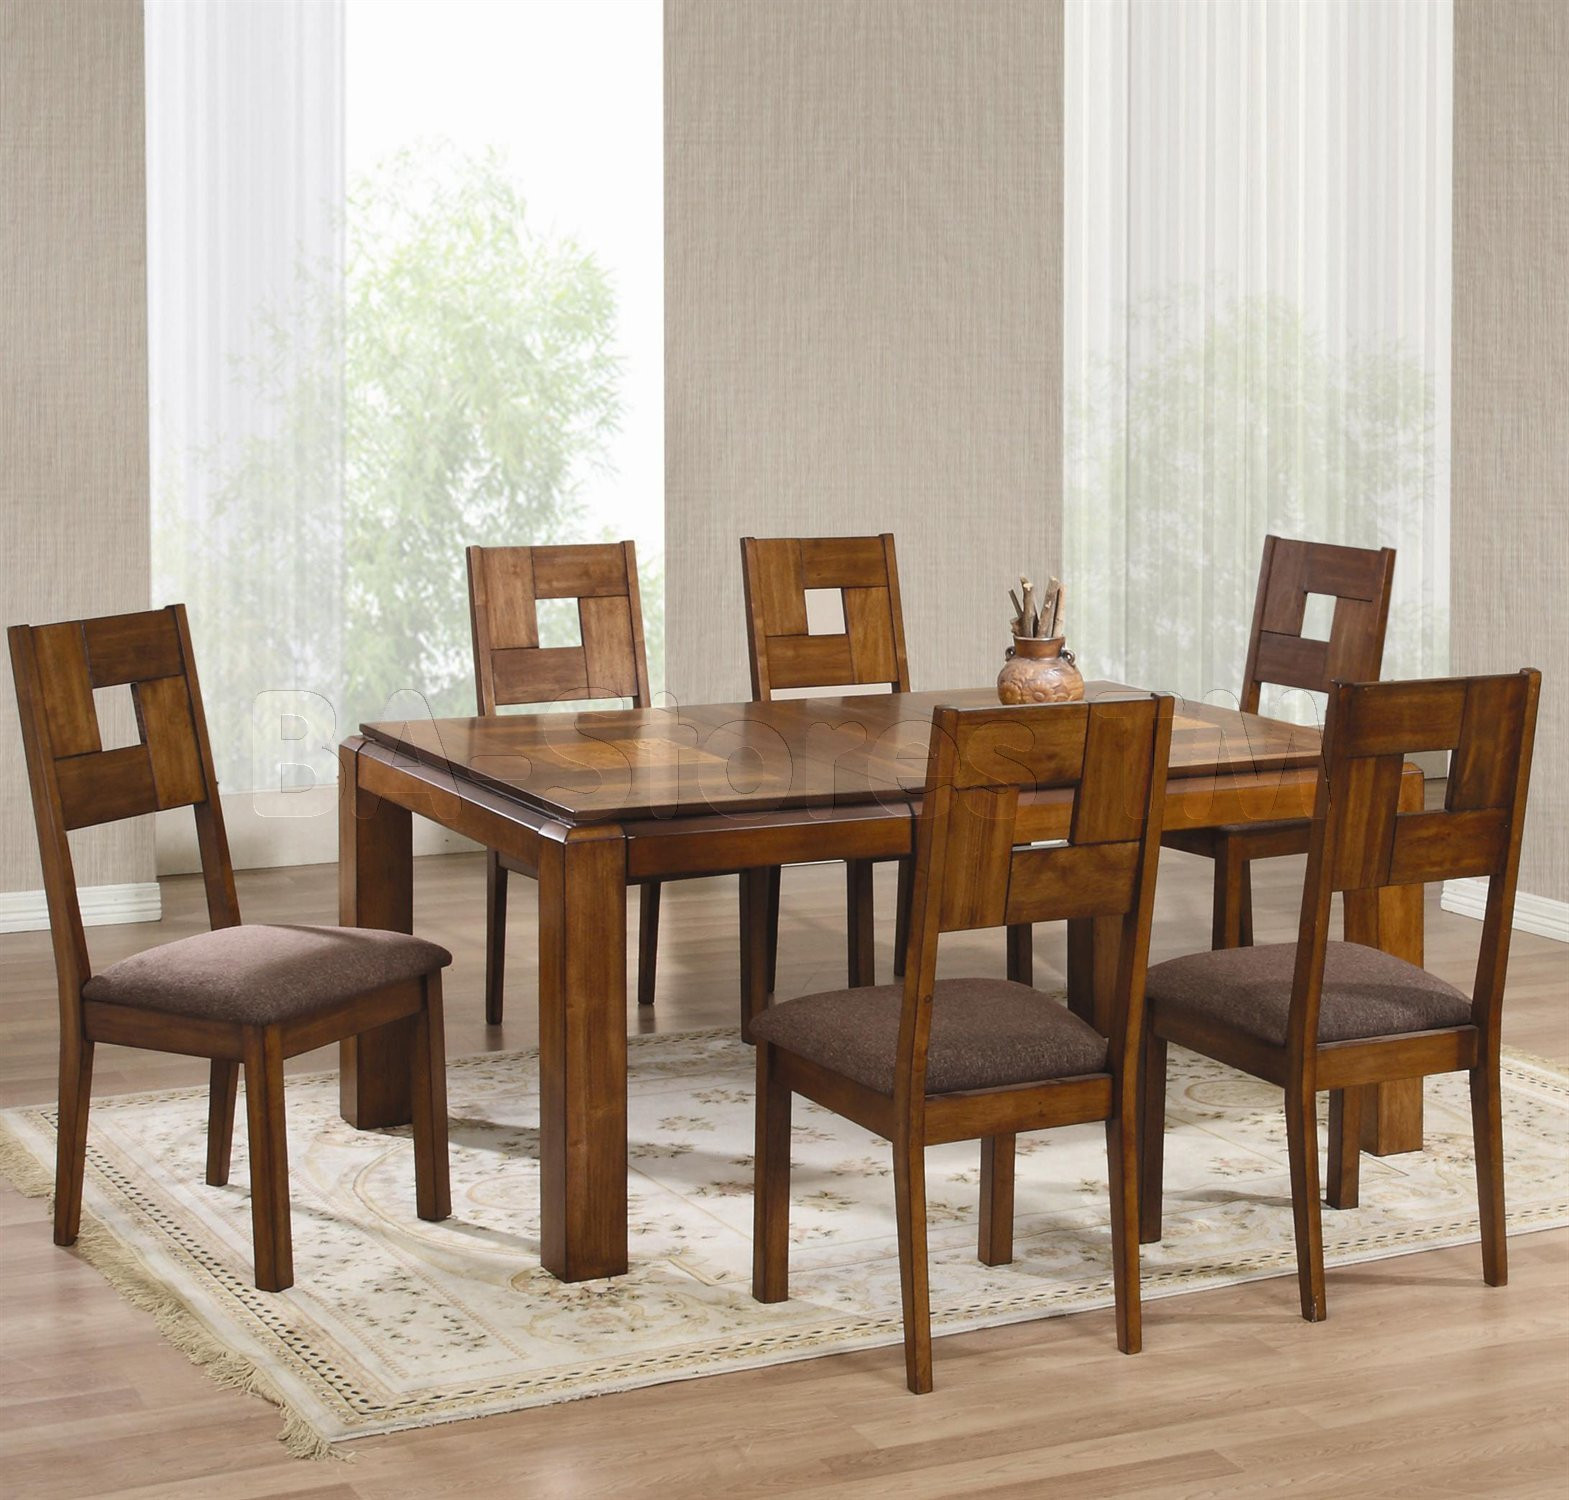 Best ideas about Ikea Dining Room Tables . Save or Pin [ Ikea Dining Room Table ] Best Free Home Design Idea Now.